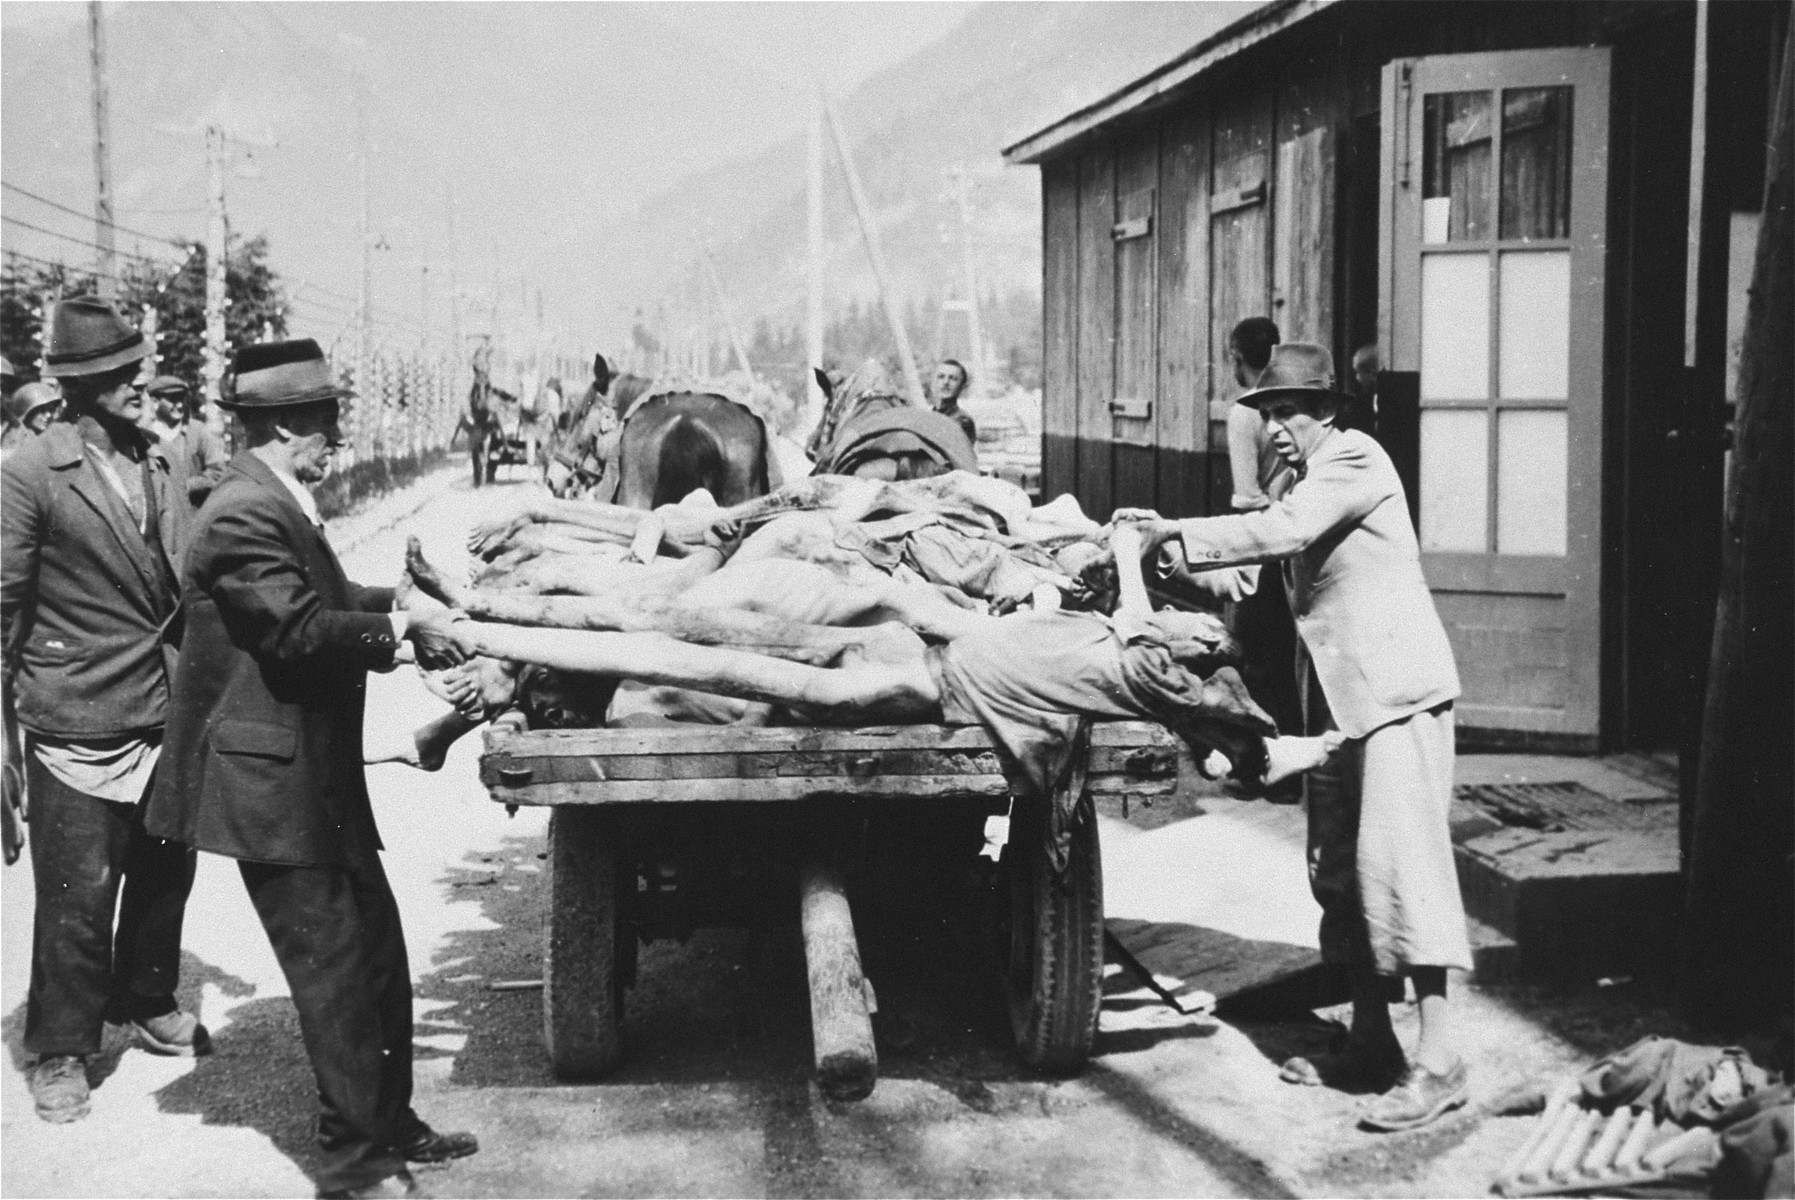 Austrian civilians remove bodies from Ebensee to a nearby site for burial.